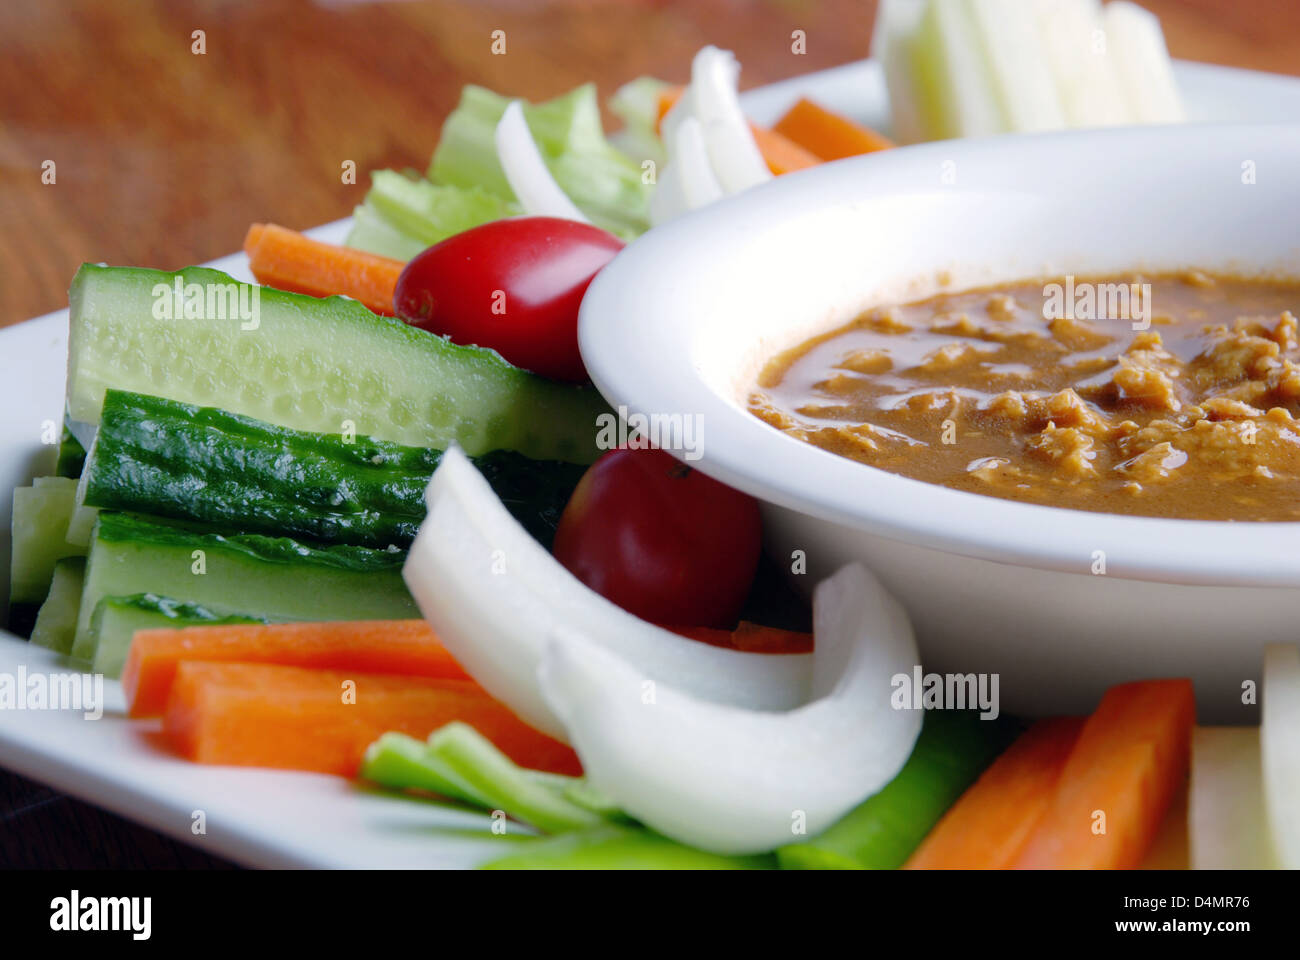 food in china-- vegetable receive favors sweet sauce - Stock Image